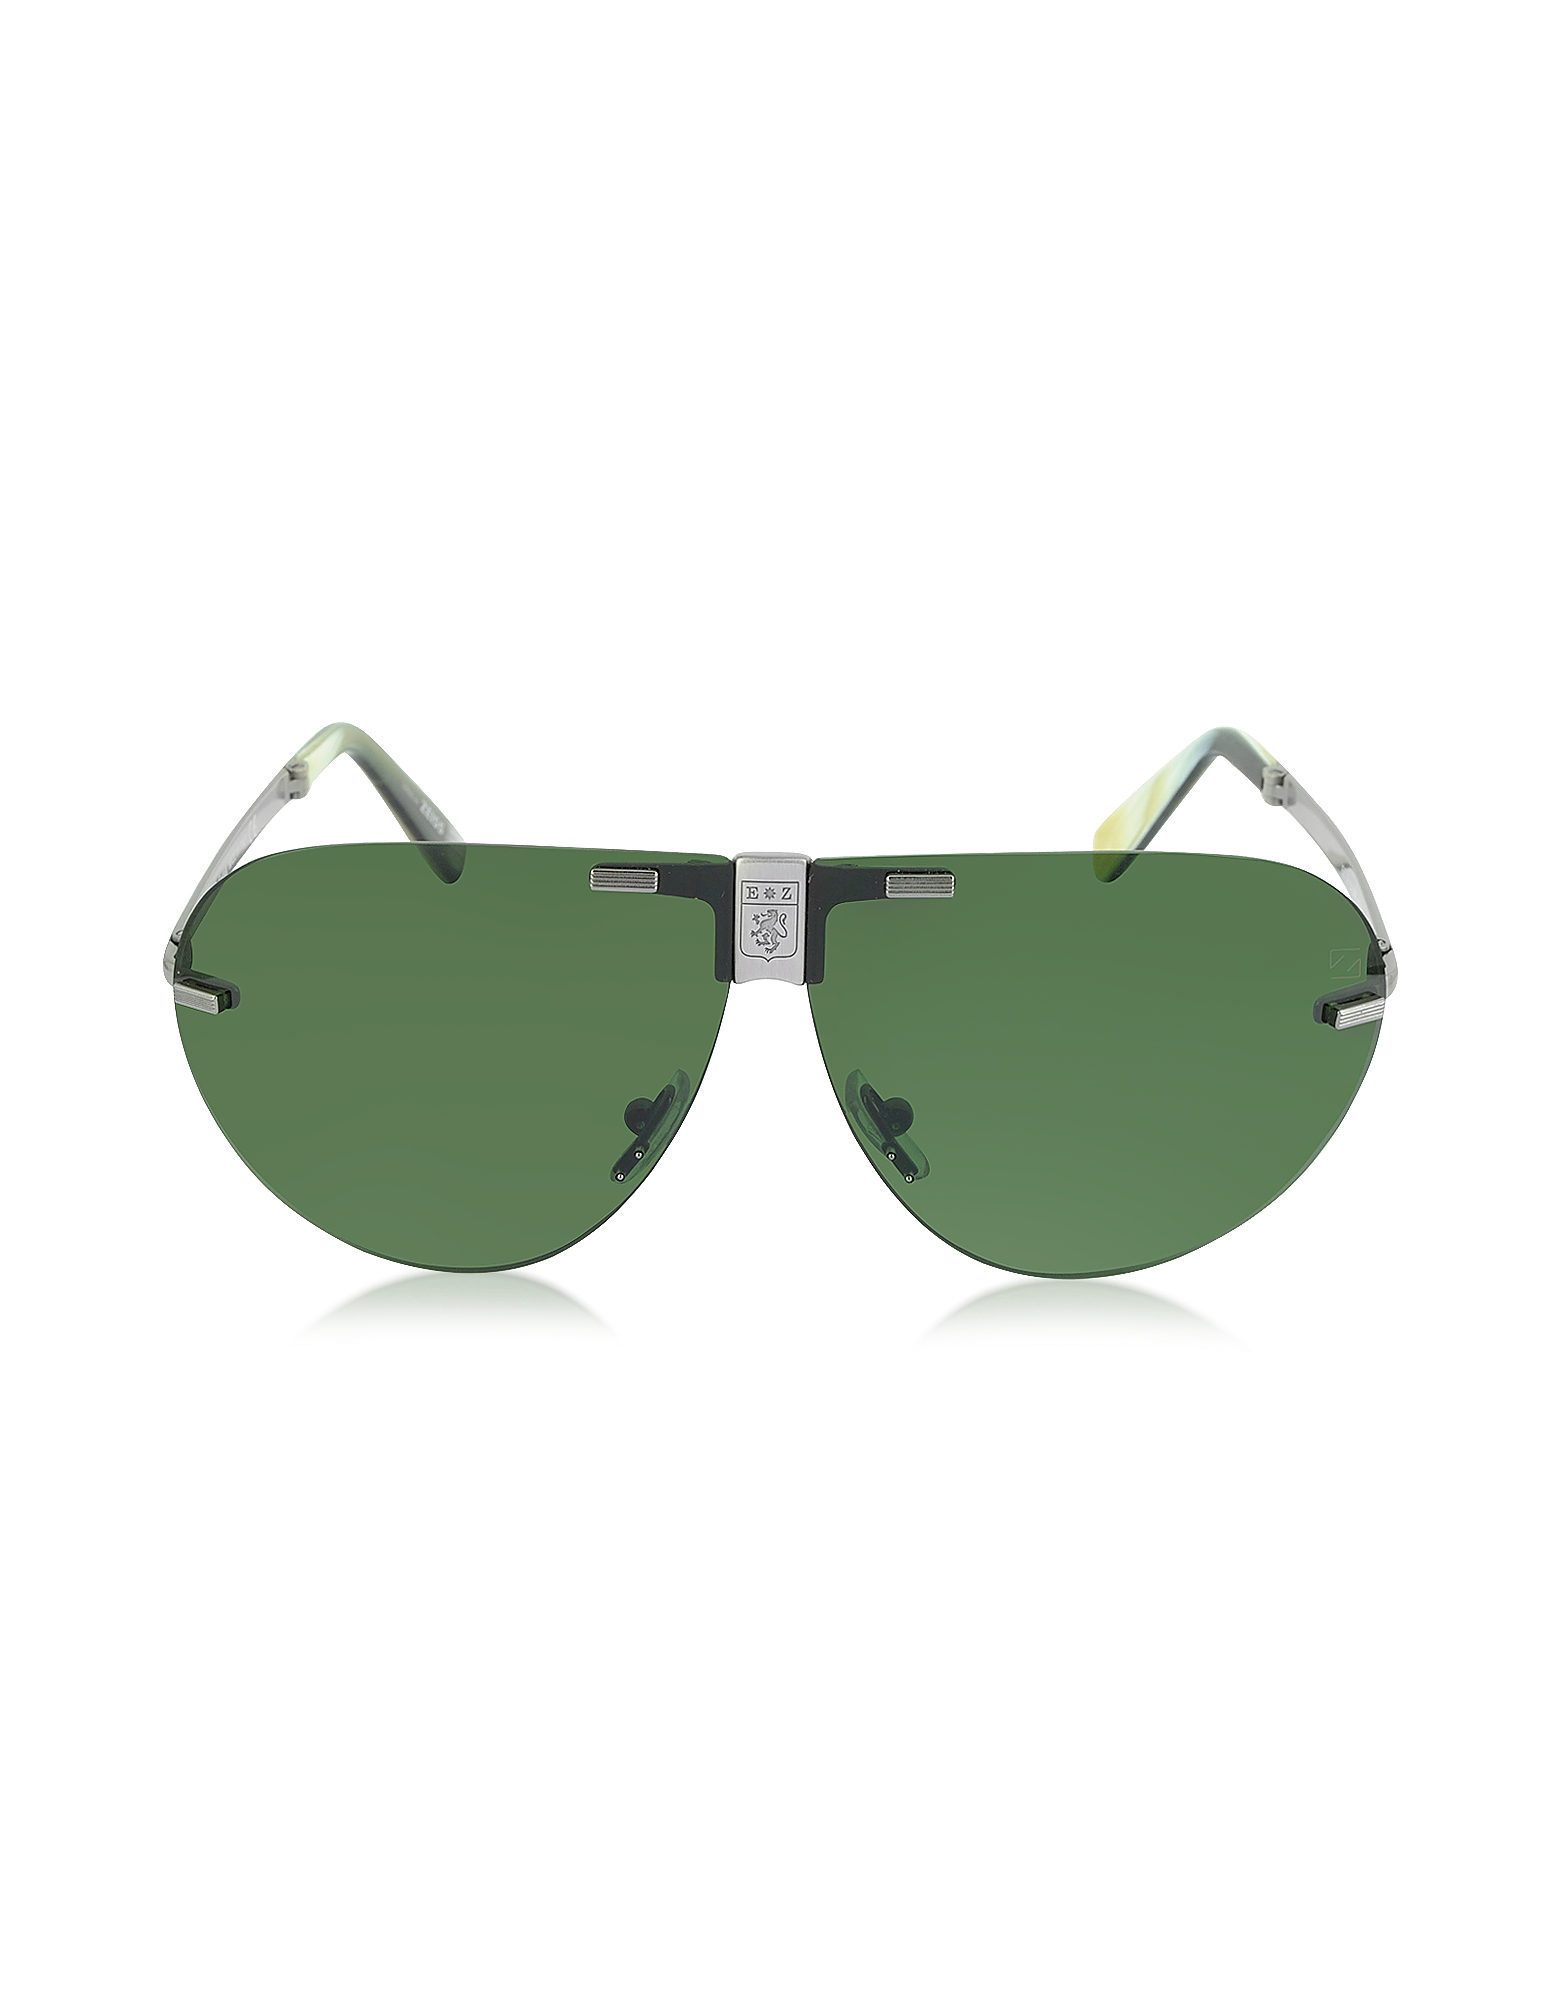 Ermenegildo Zegna Sunglasses, EZ0015 Metal Folding Aviator Men's Sunglasses